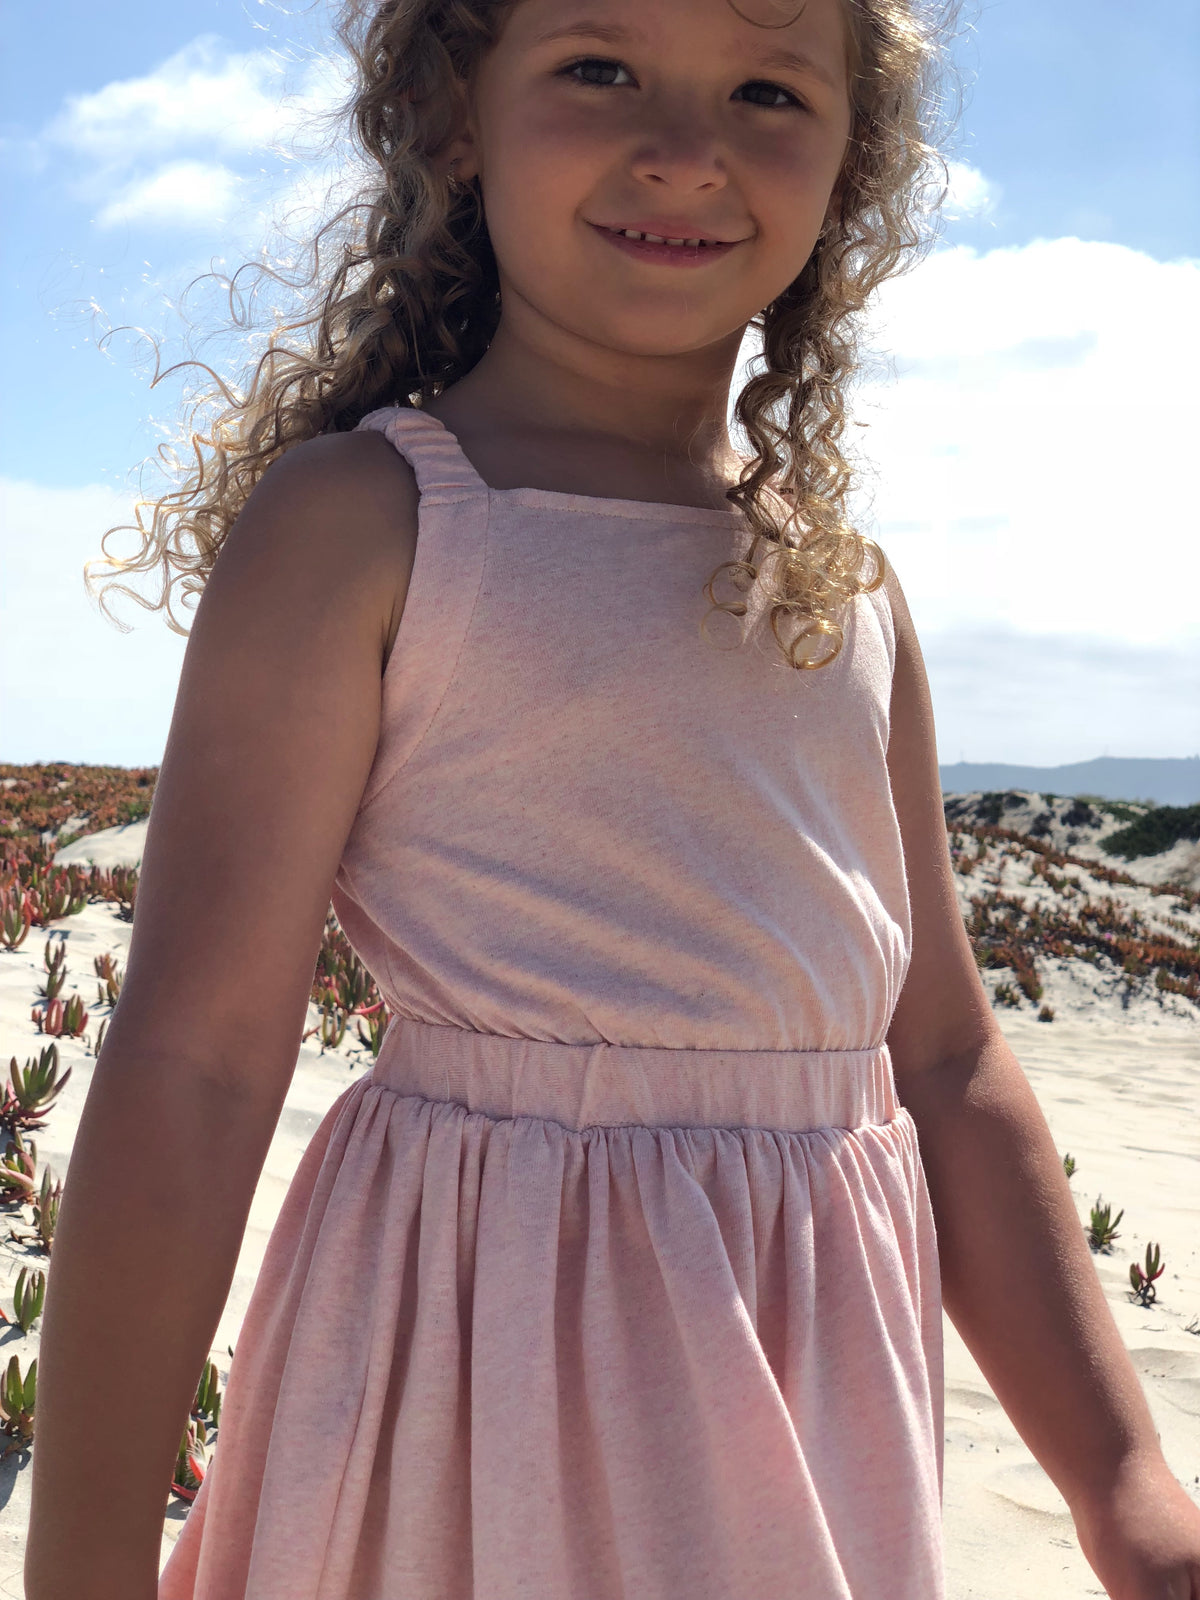 Girls blush color cotton sleeveless dress by Vignette.